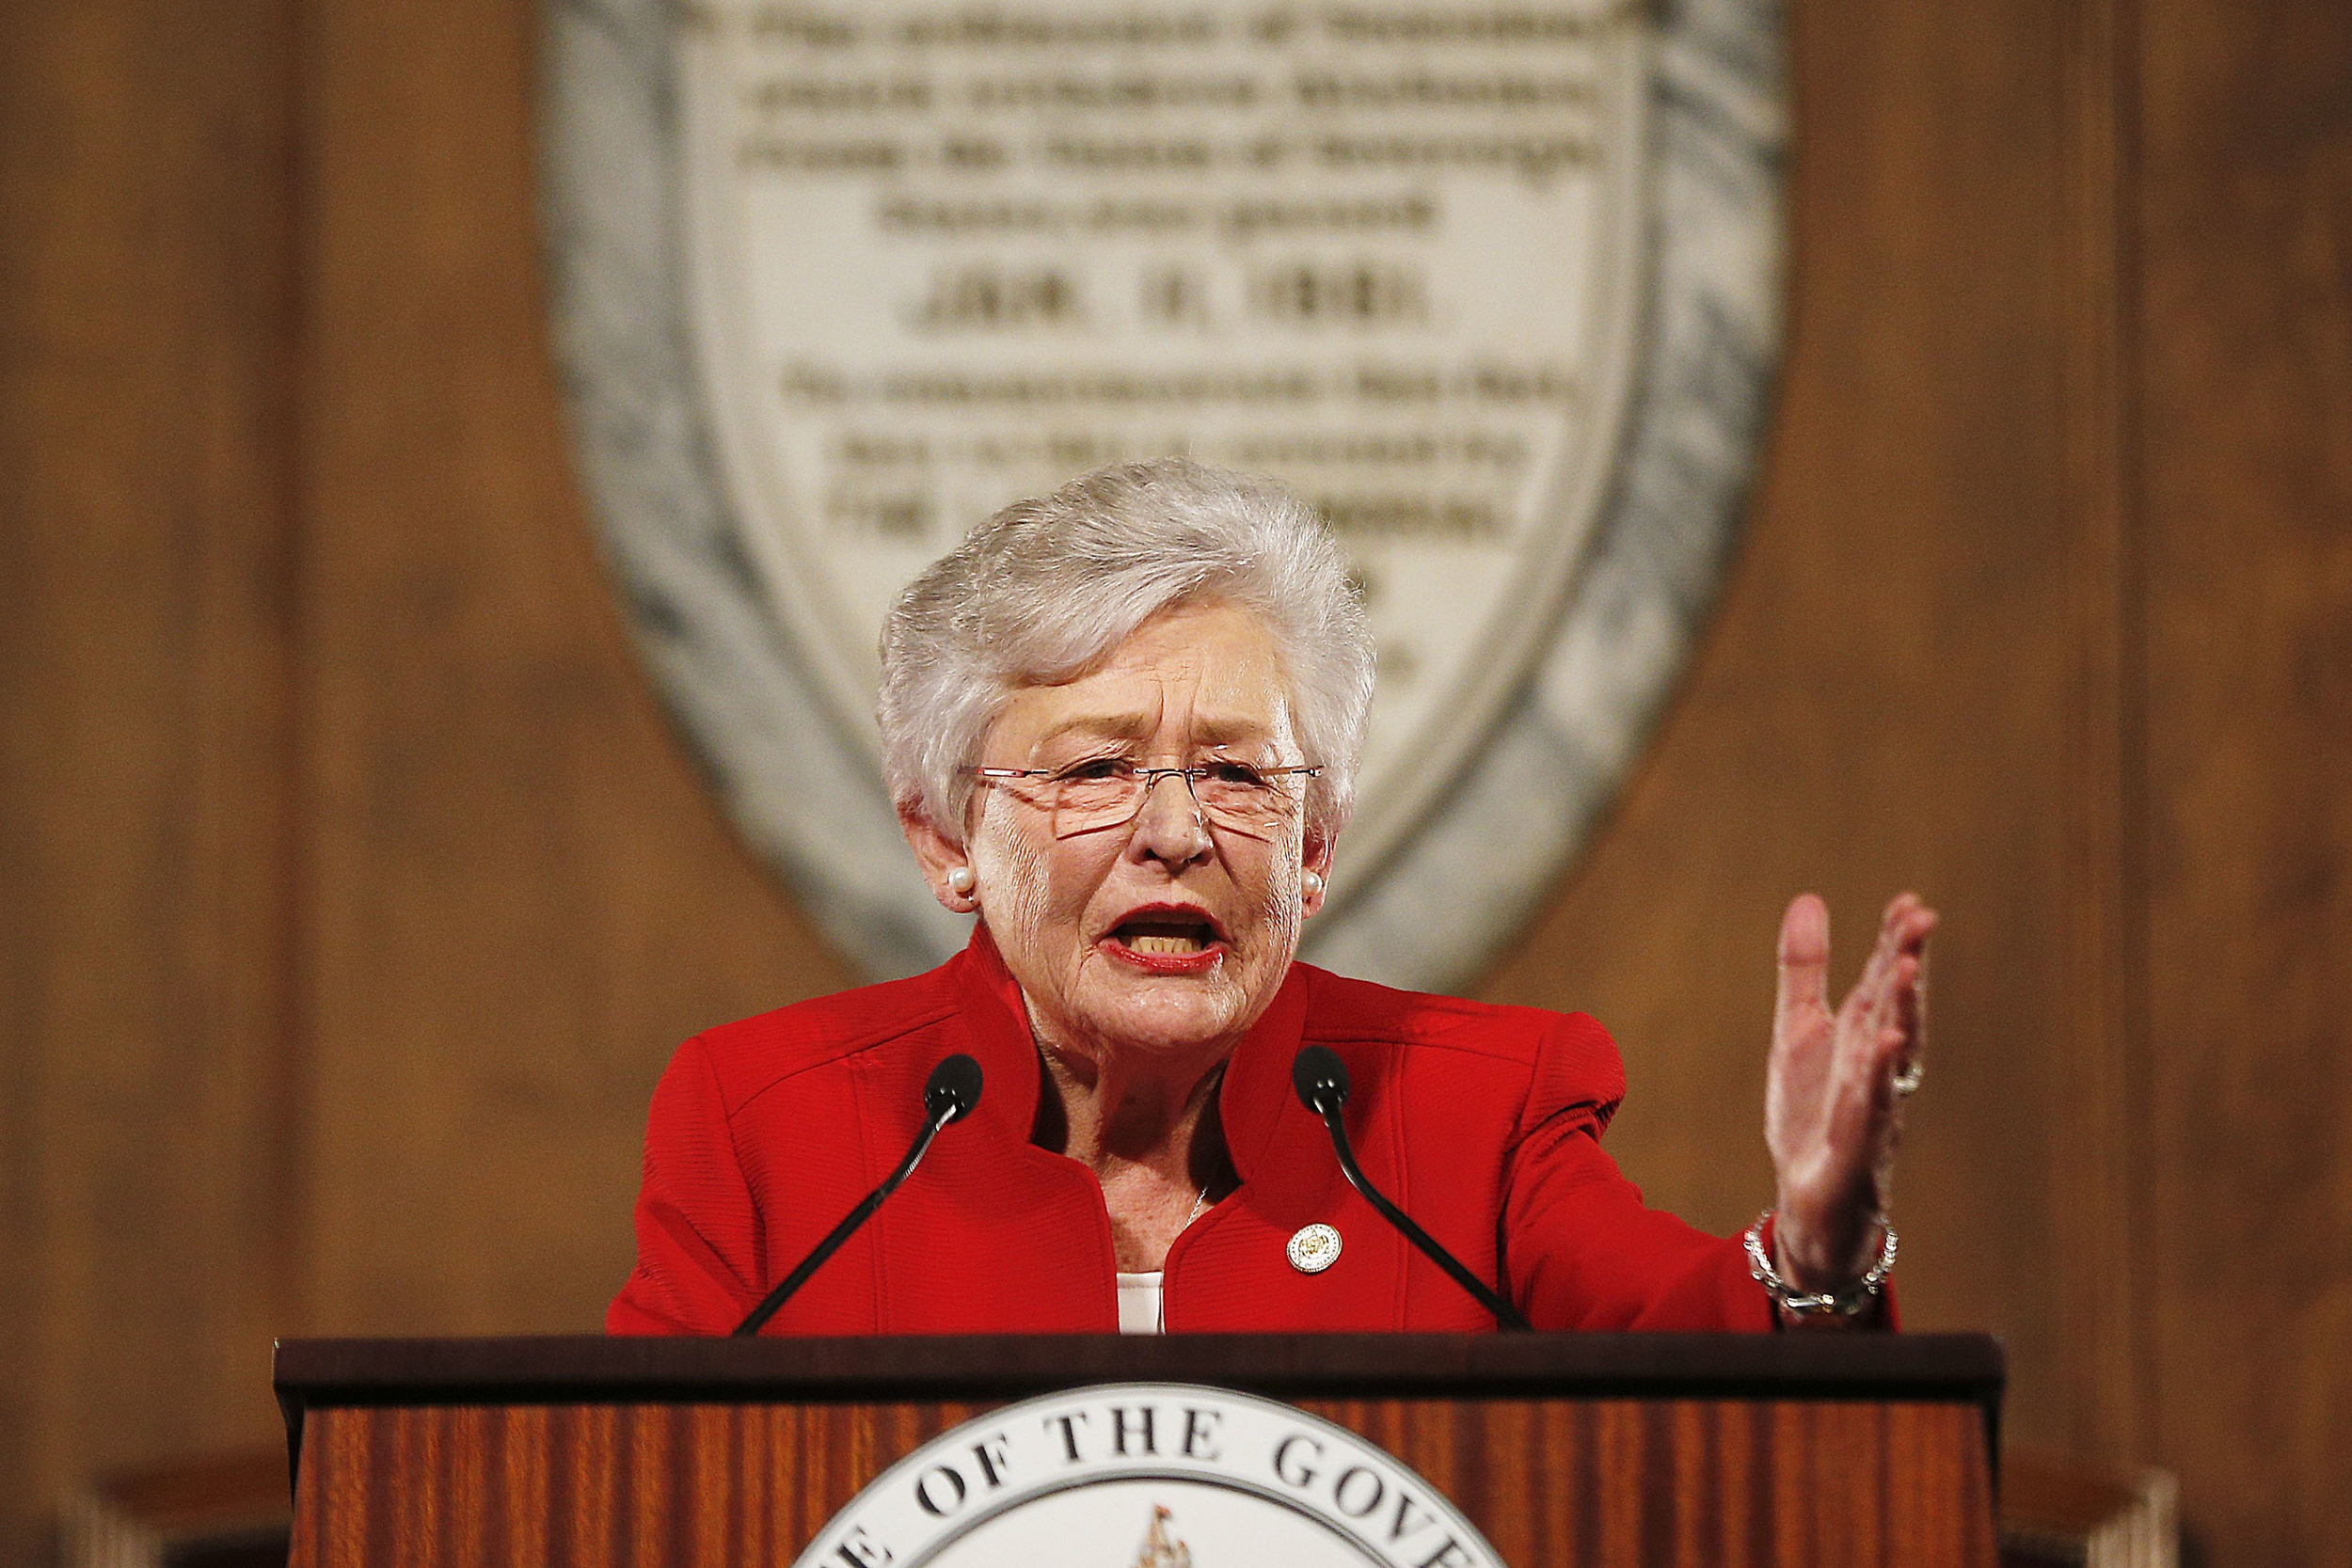 Alabama governor blames 'unvaccinated folks' for new Covid cases